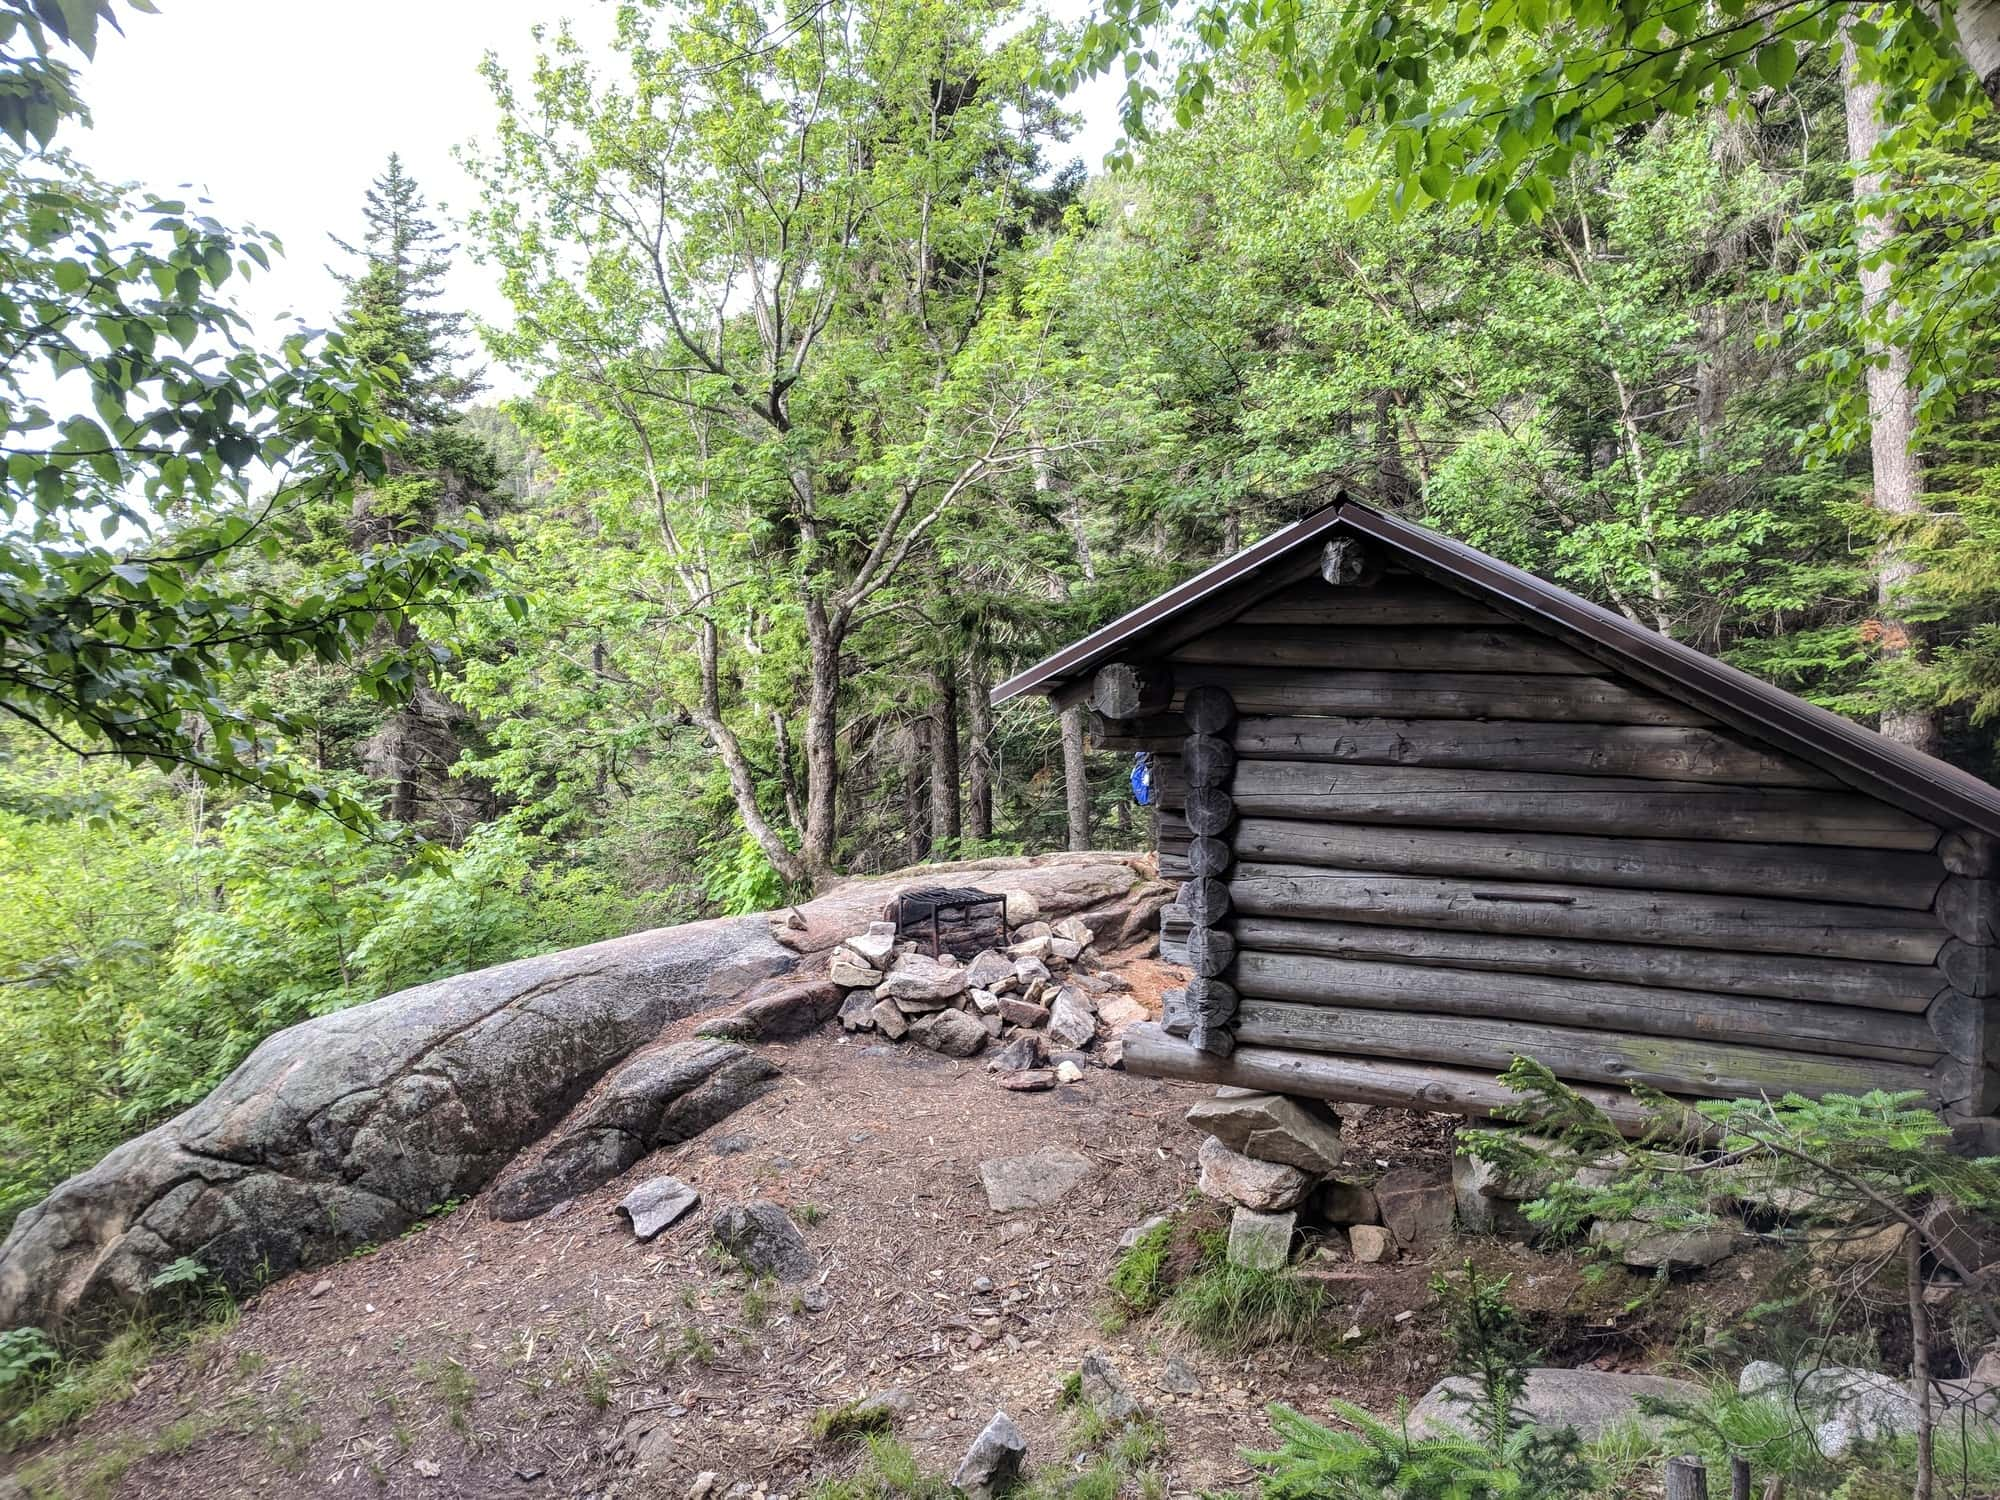 Your guide to backpacking the piper trail and carter ledge loop to Mount Chocorua in the White Mountains of New Hampshire.